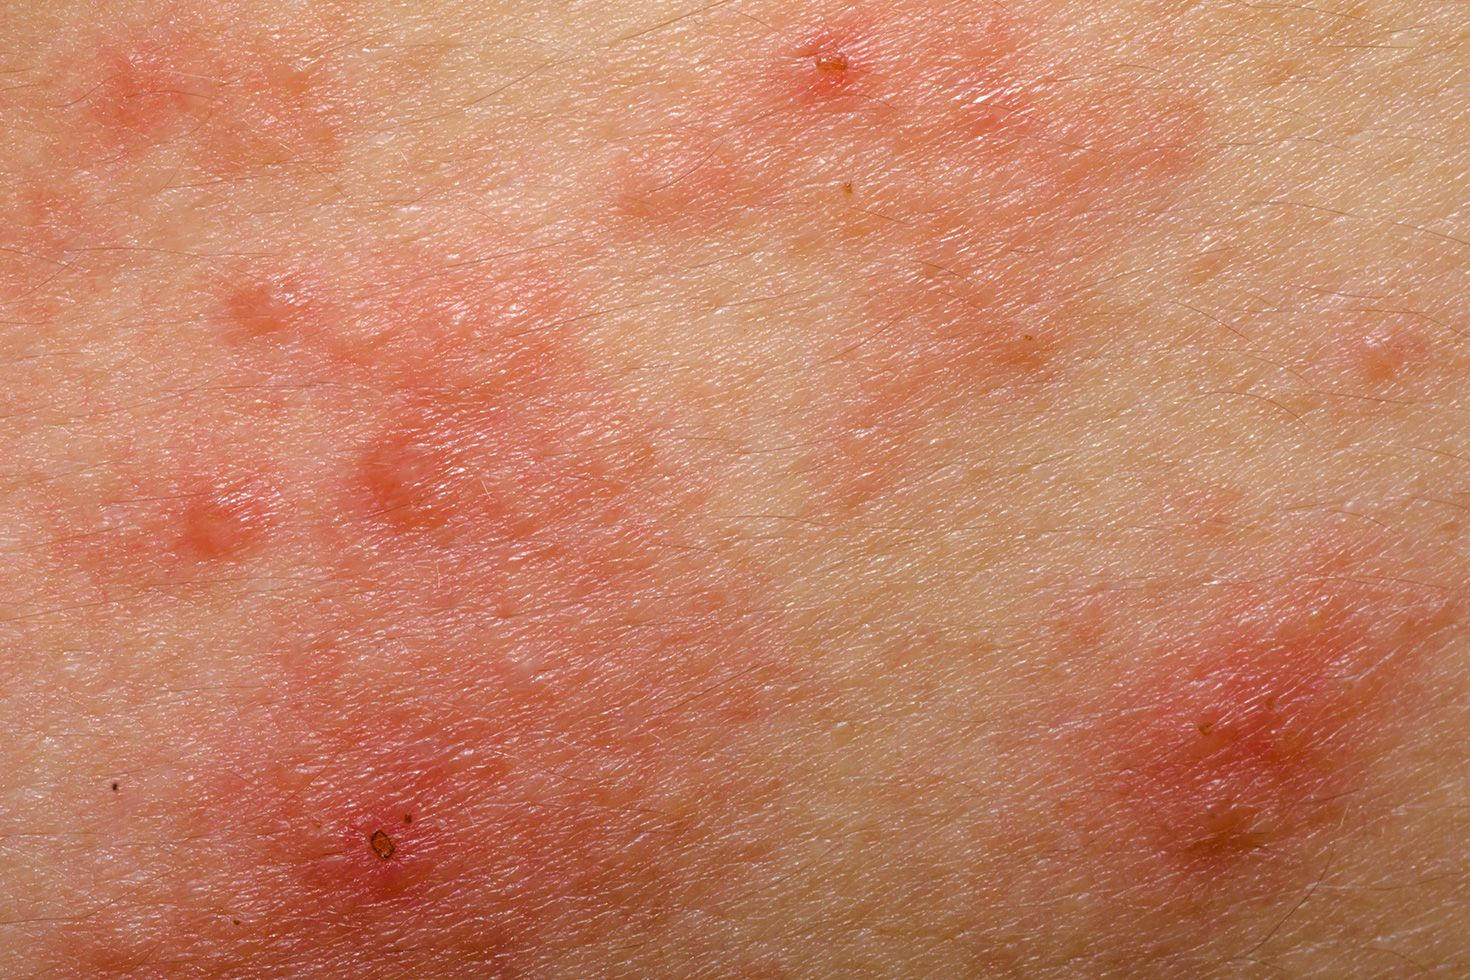 Anal itch and rash